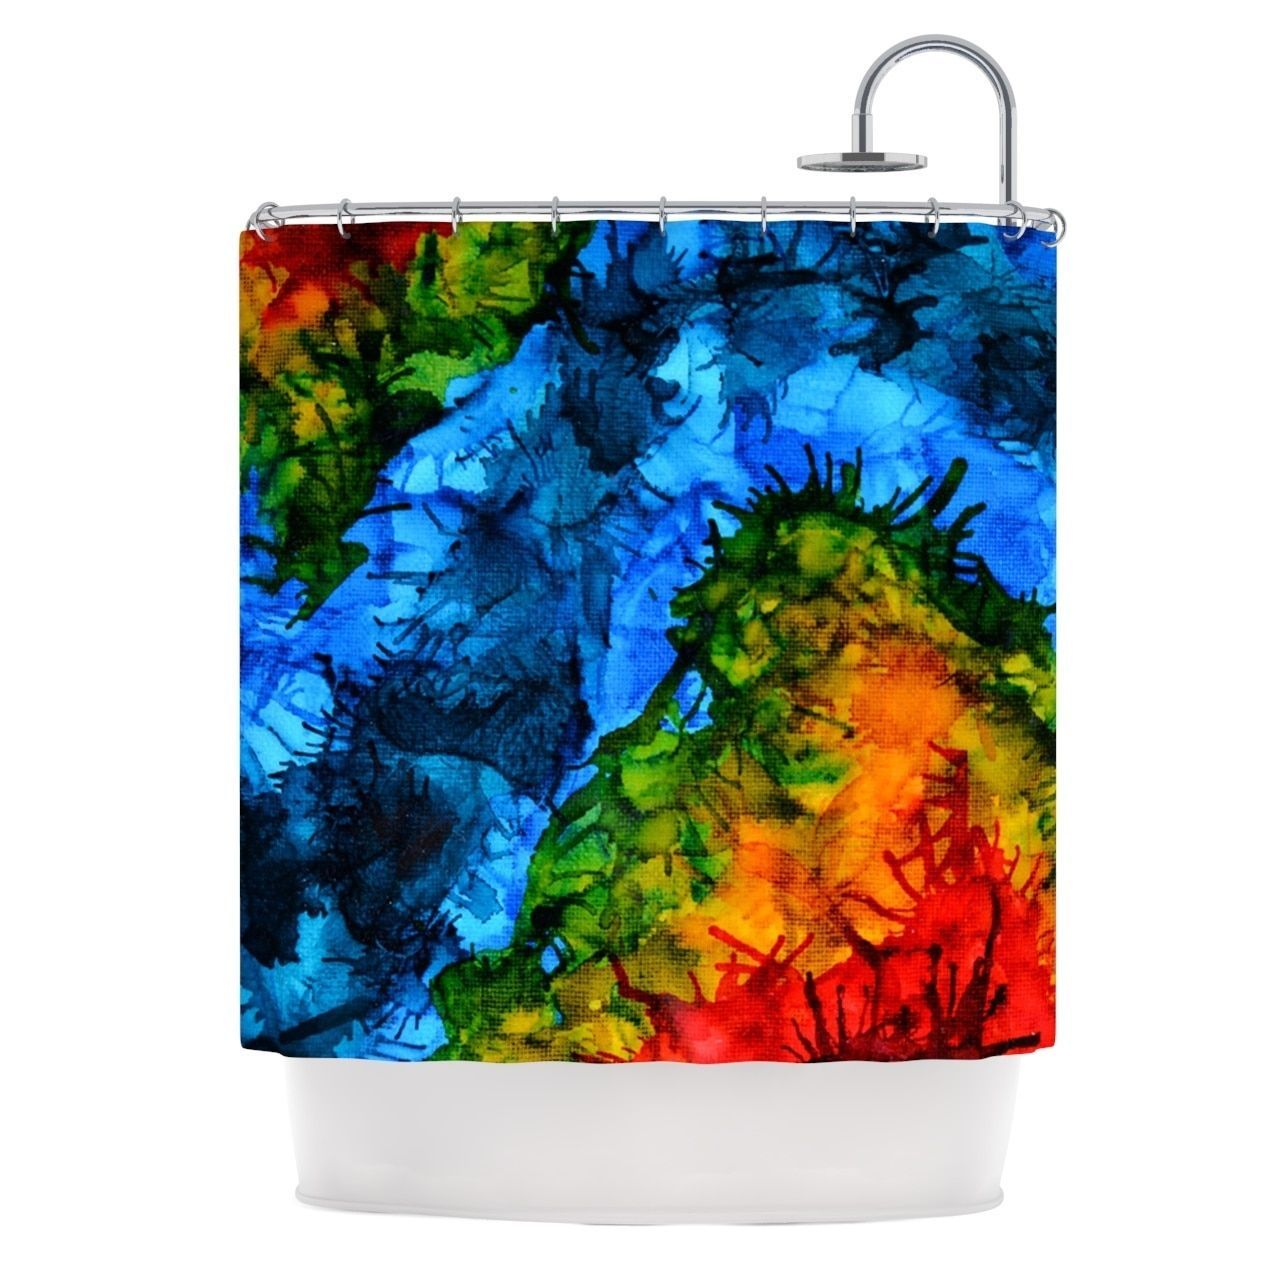 "Kess InHouse Claire Day ""Flow"" Blue Green Shower Curtain"